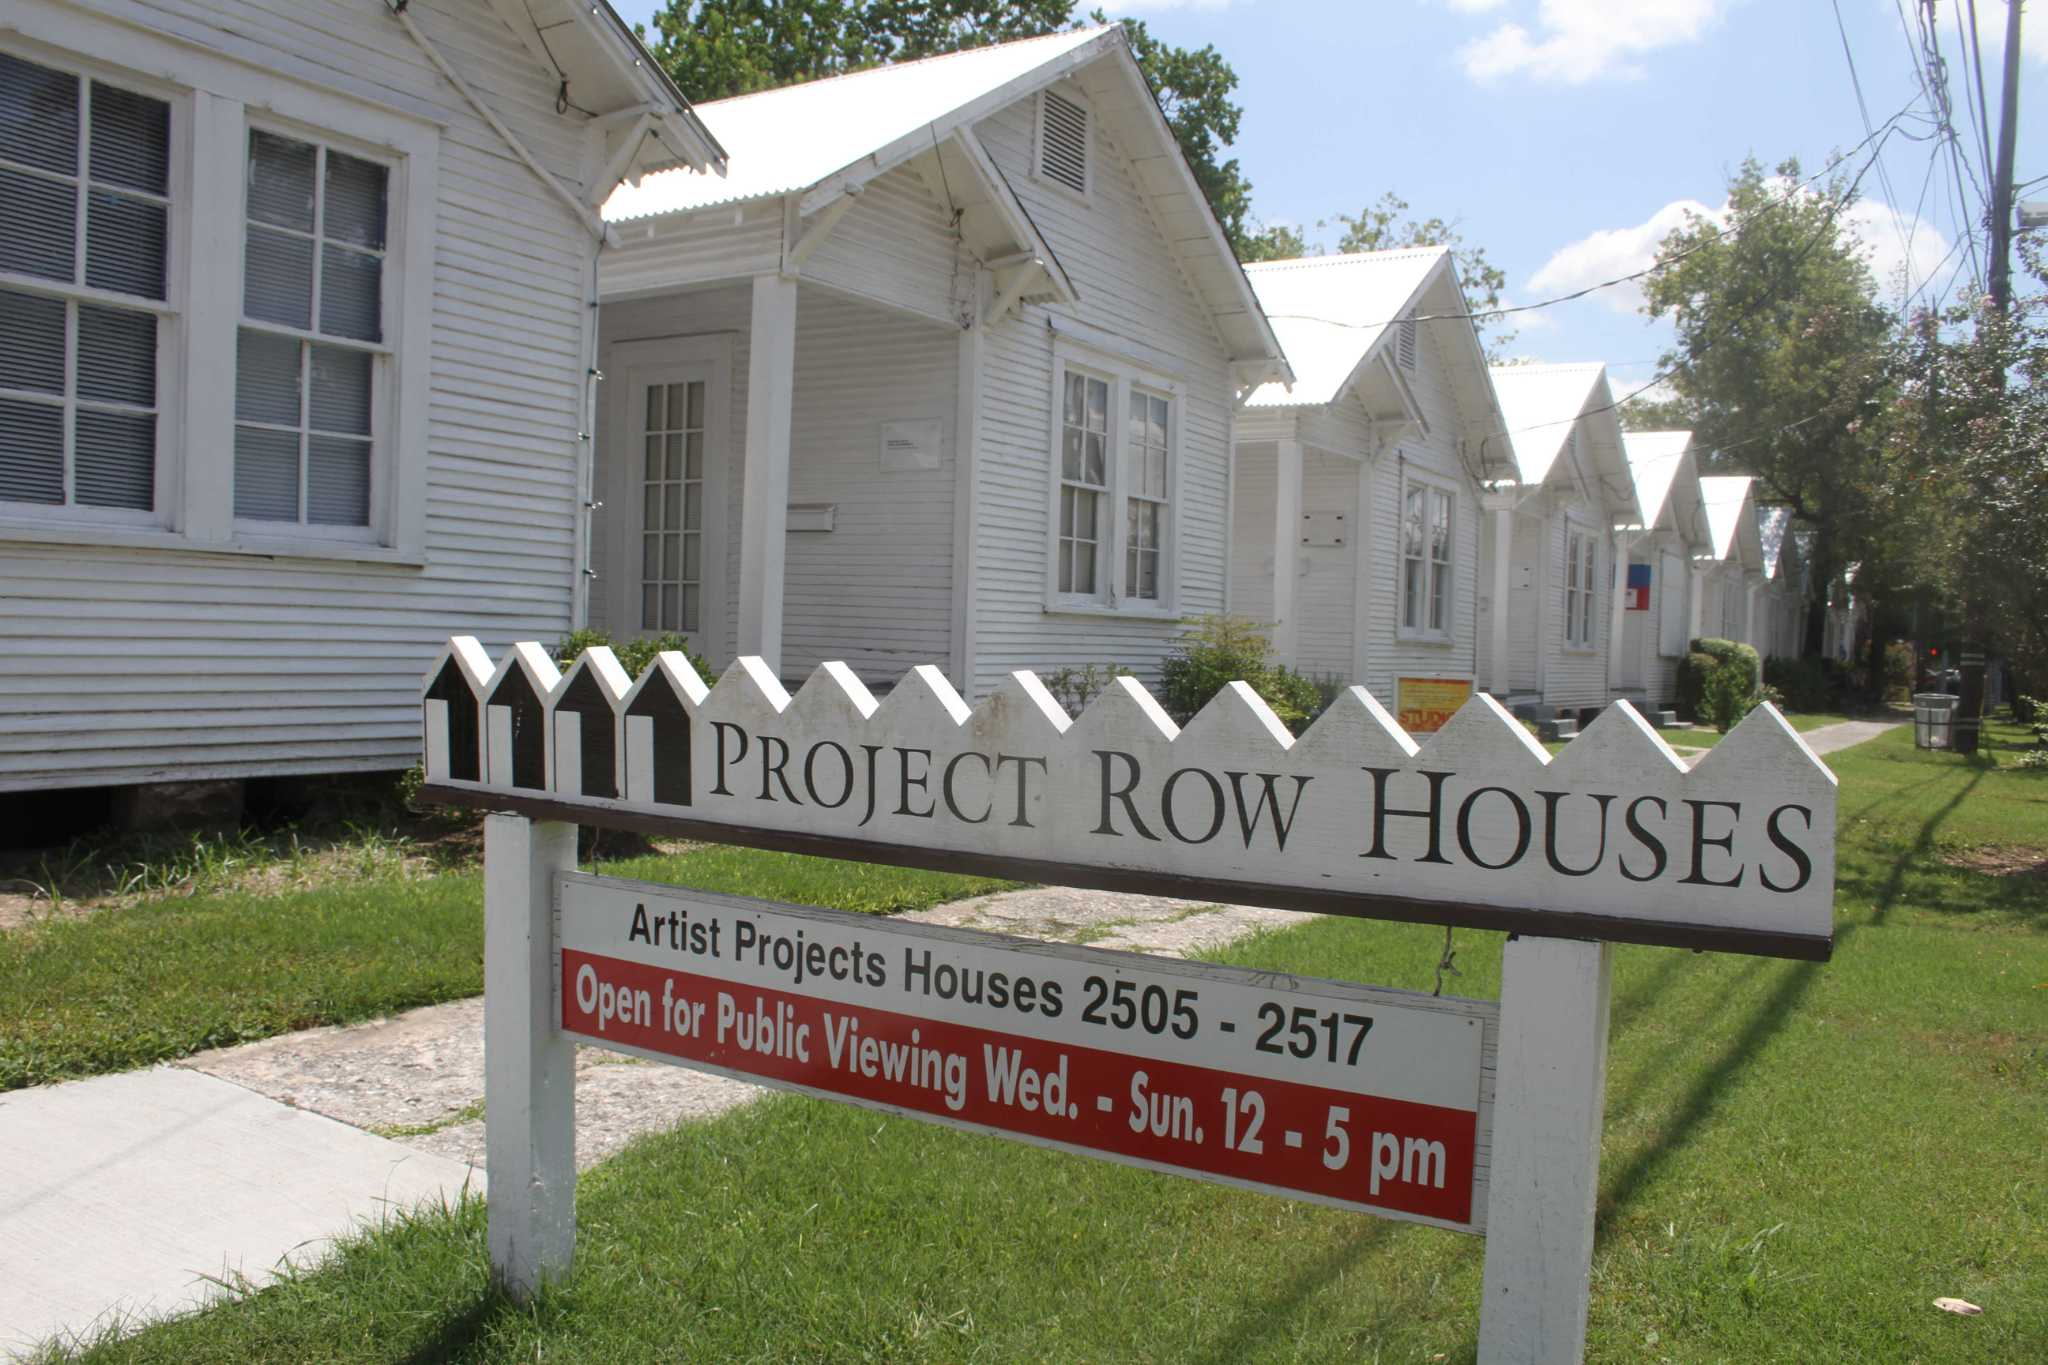 Billionaire couple donates to Project Row Houses in Third Ward